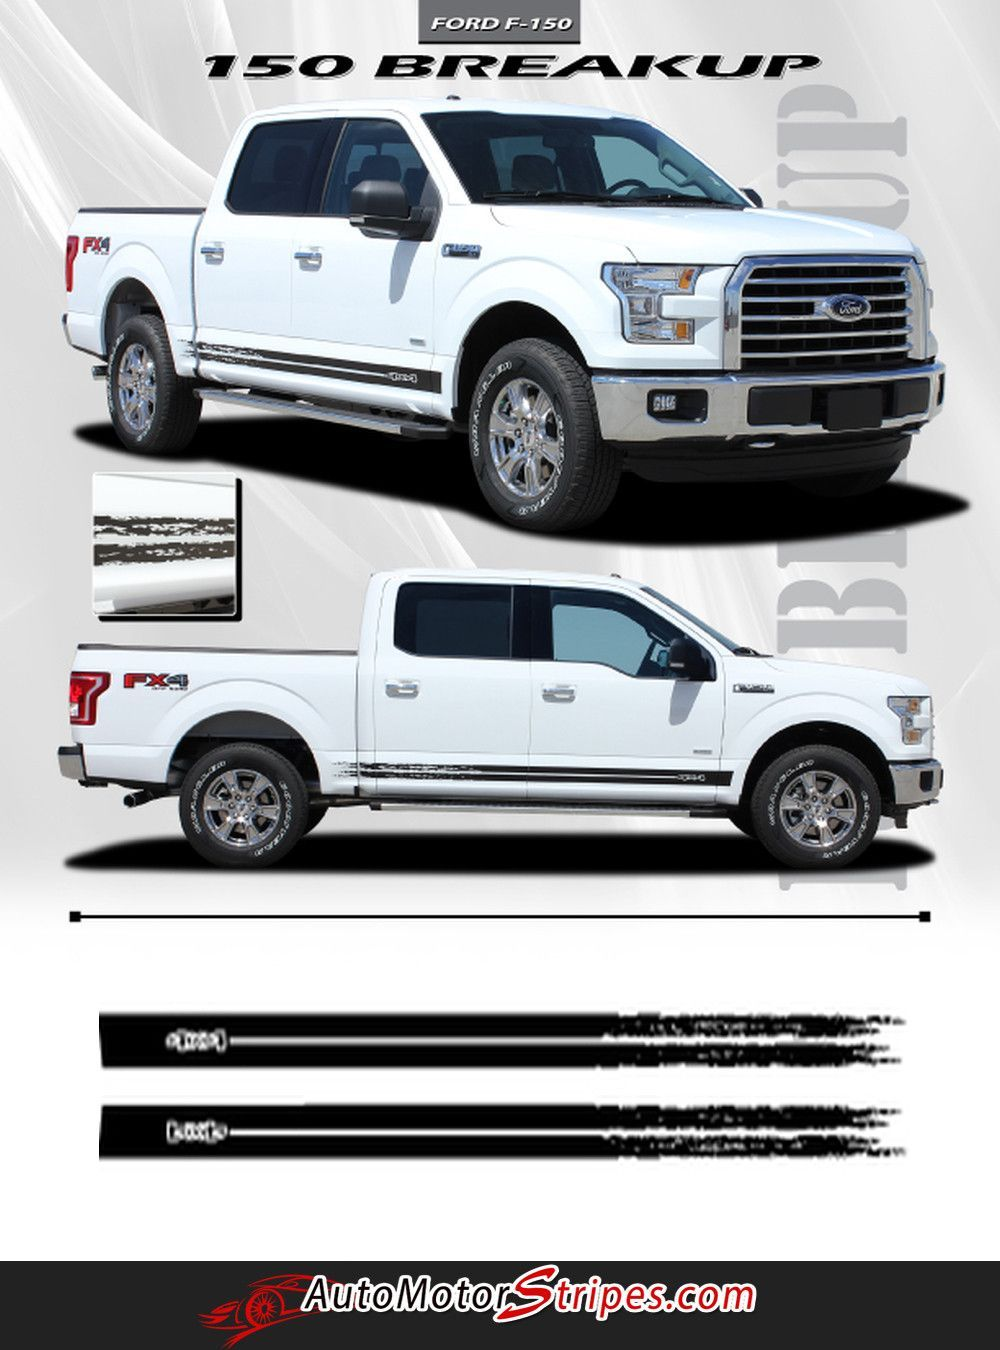 Vehicle Specific Style Ford F 150 Series Truck Breakup